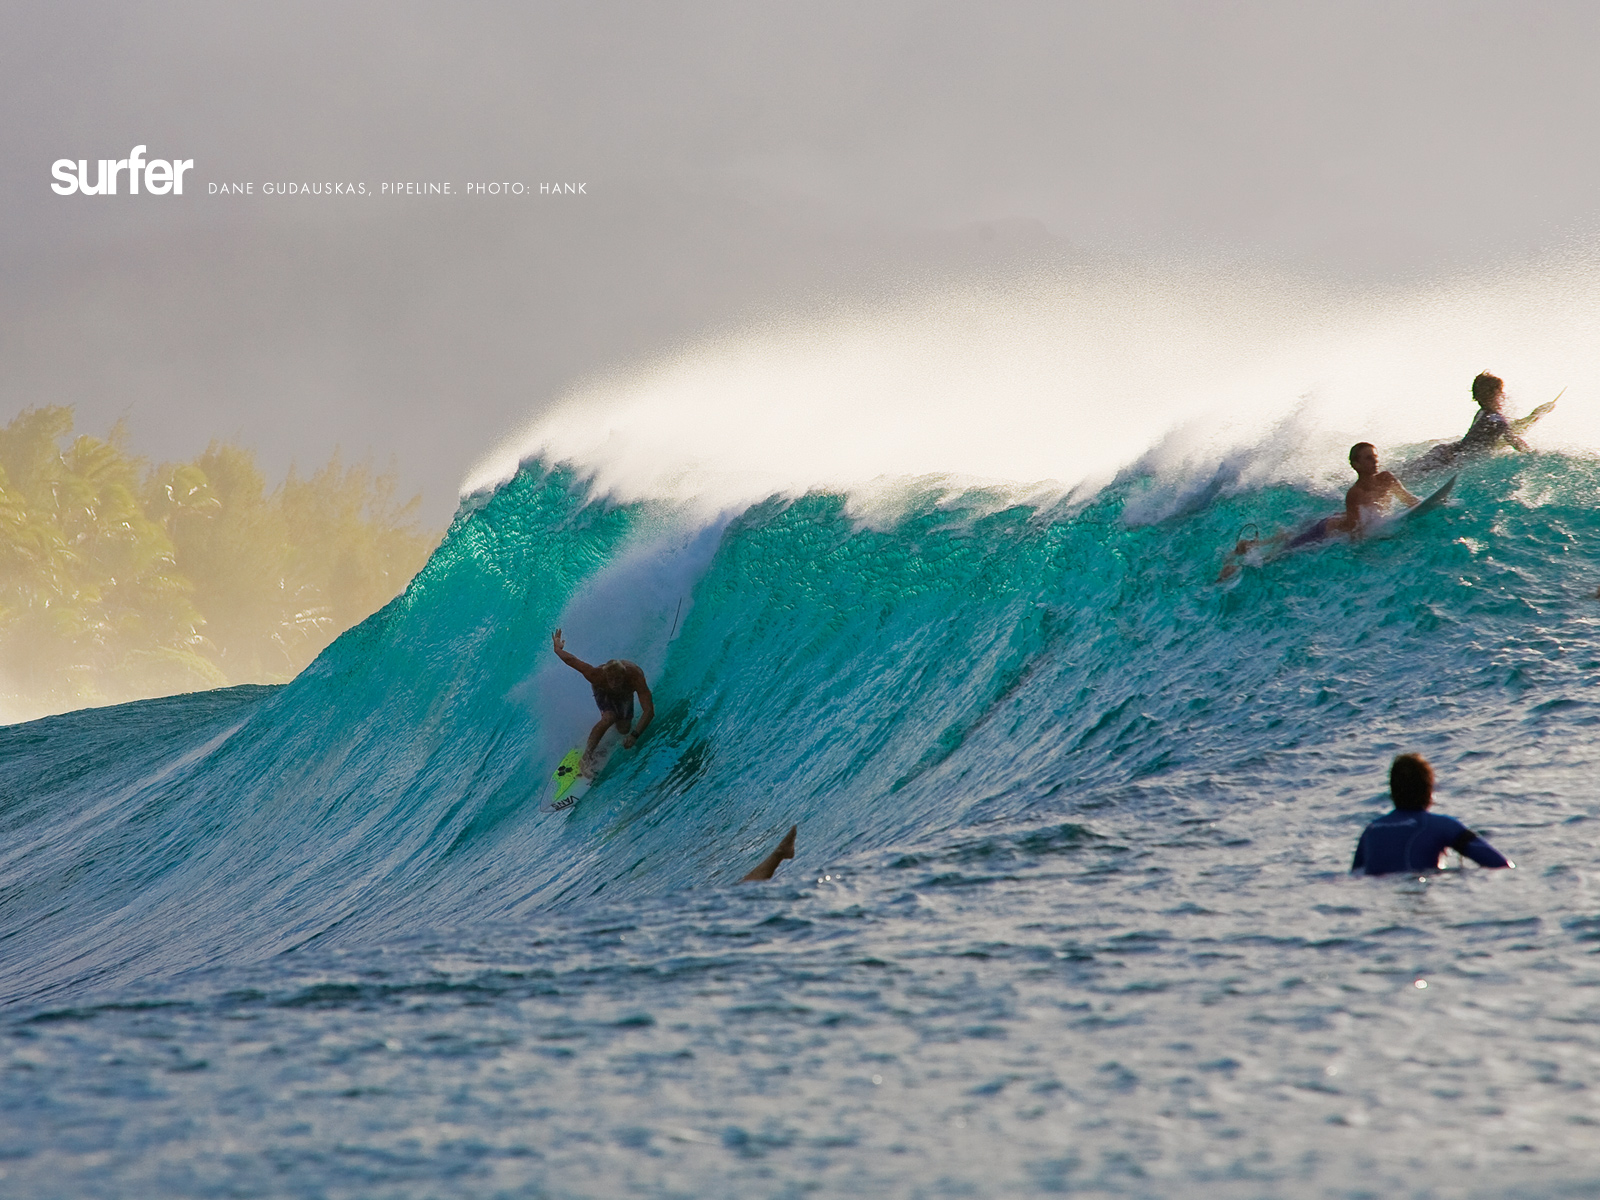 Download Surfing Magazine Wallpaper Gallery